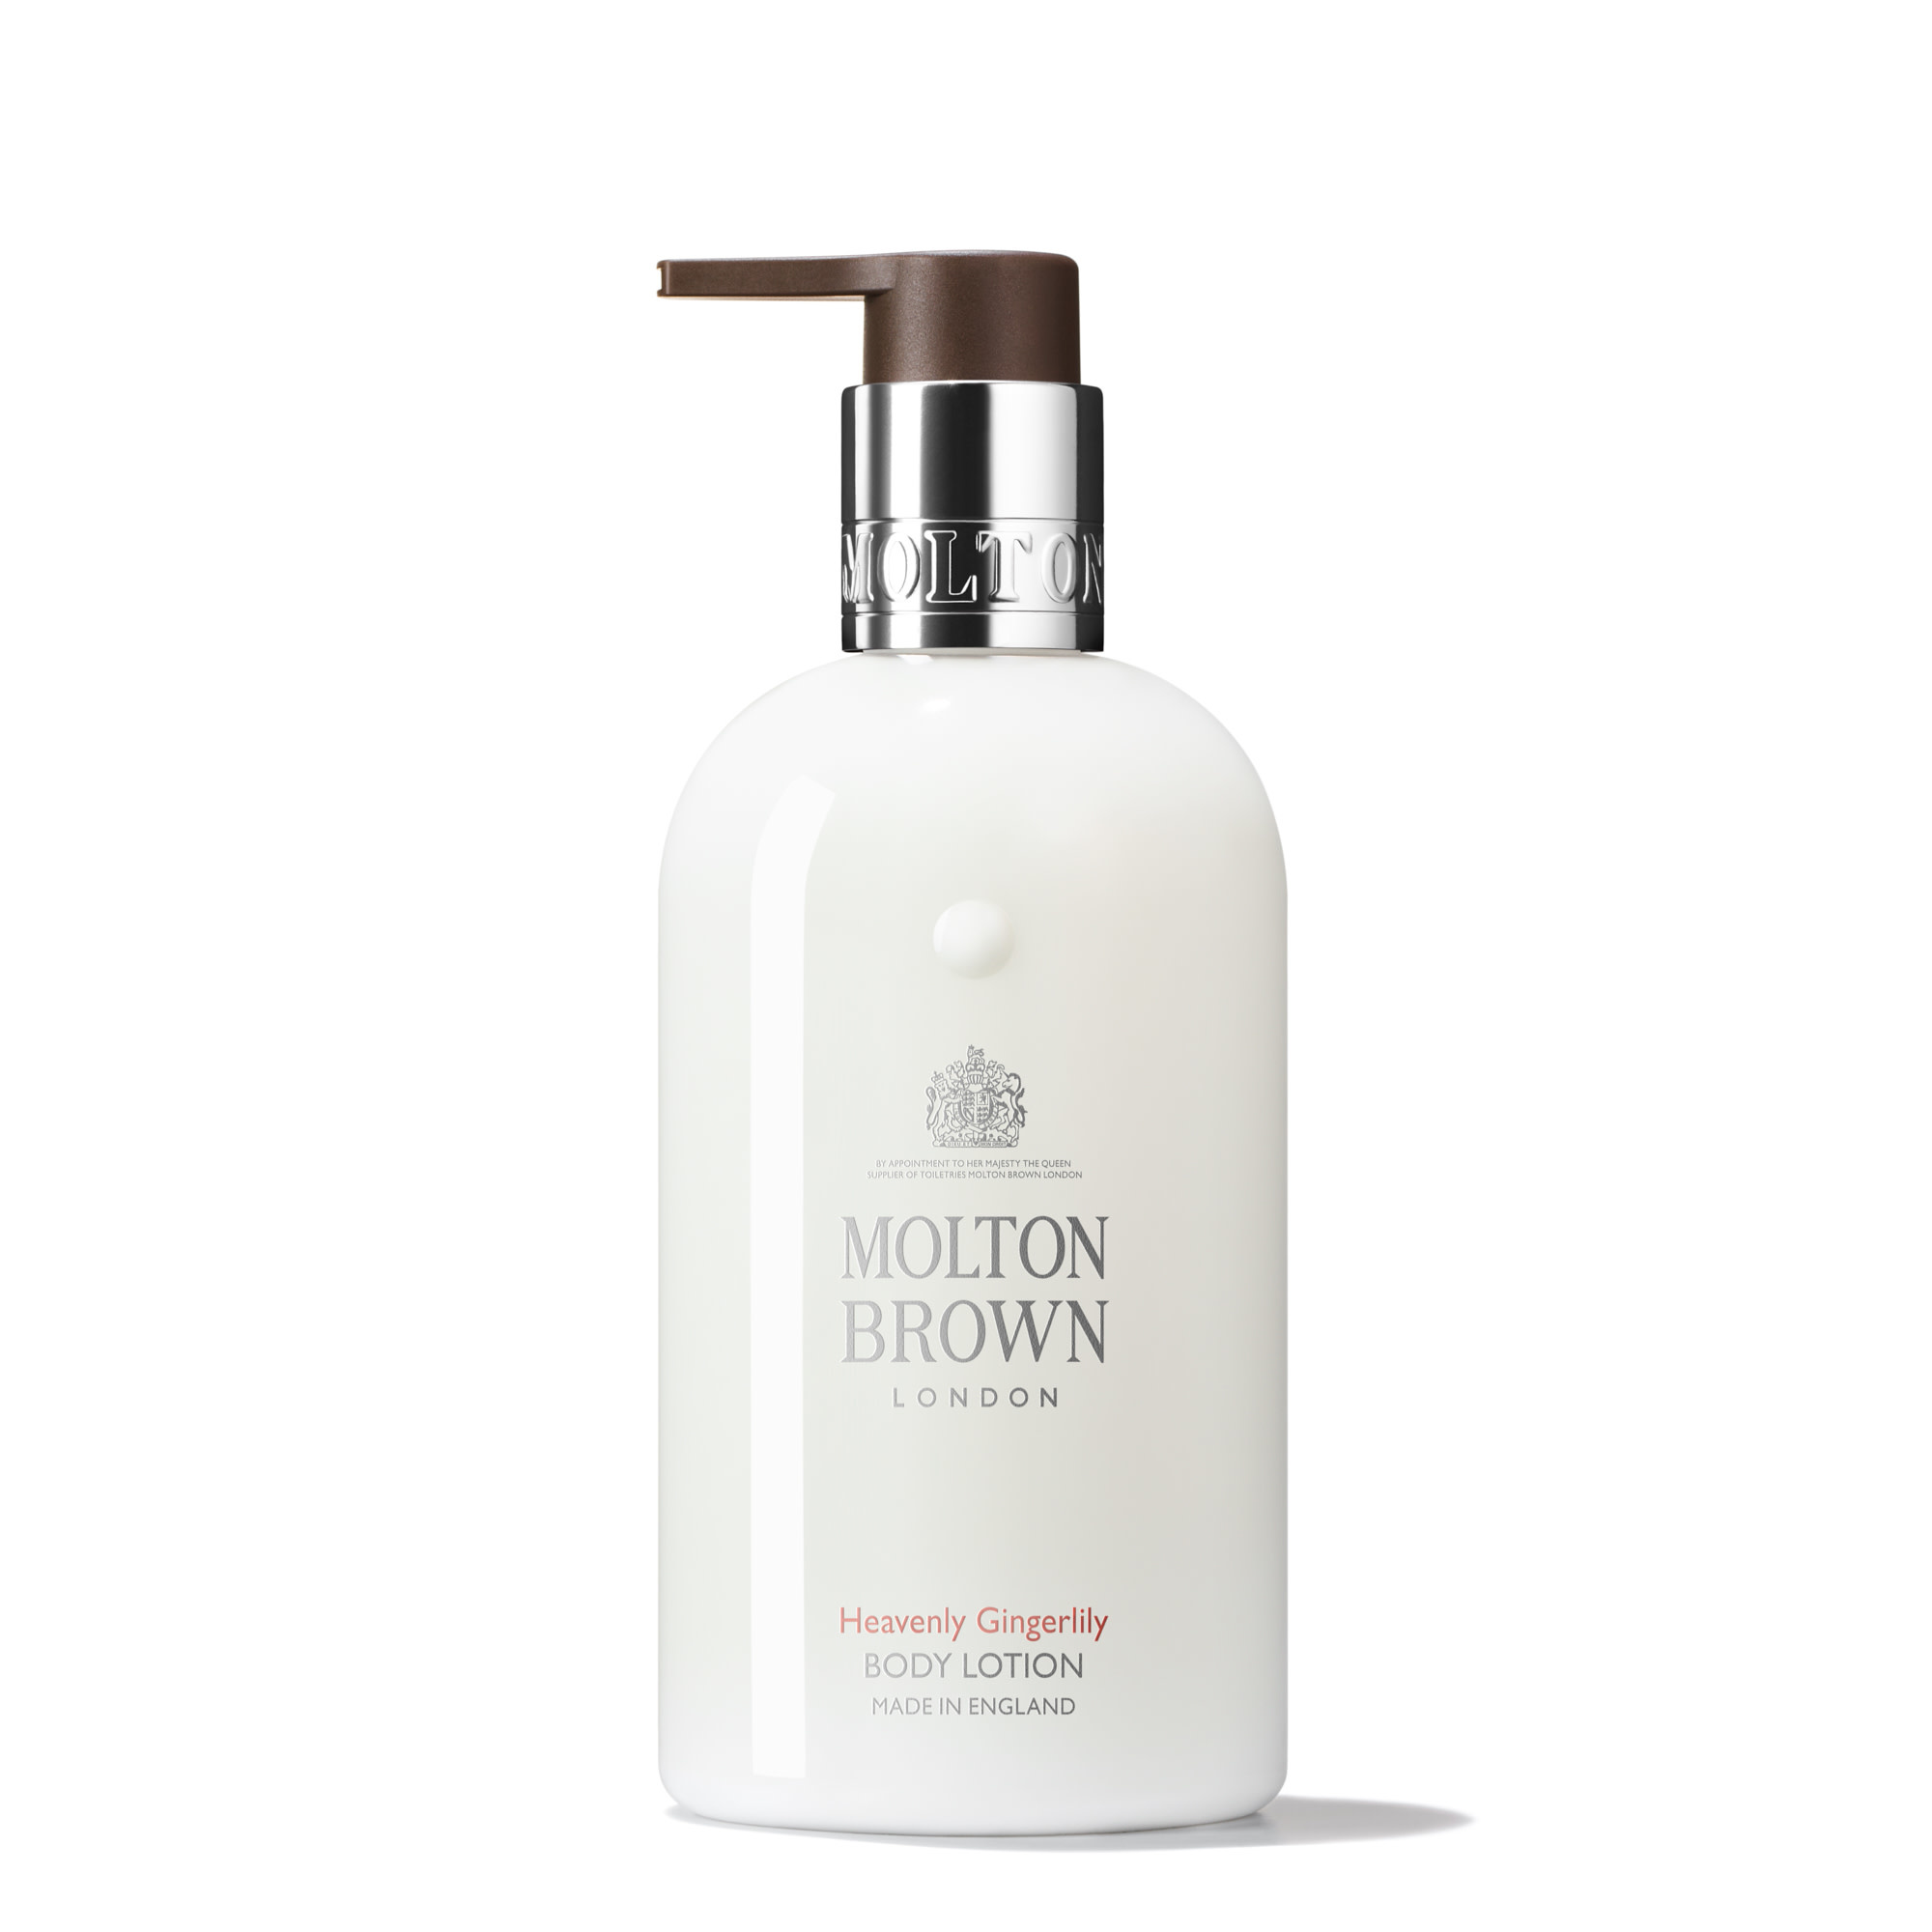 Heavenly Gingerly body lotion-4